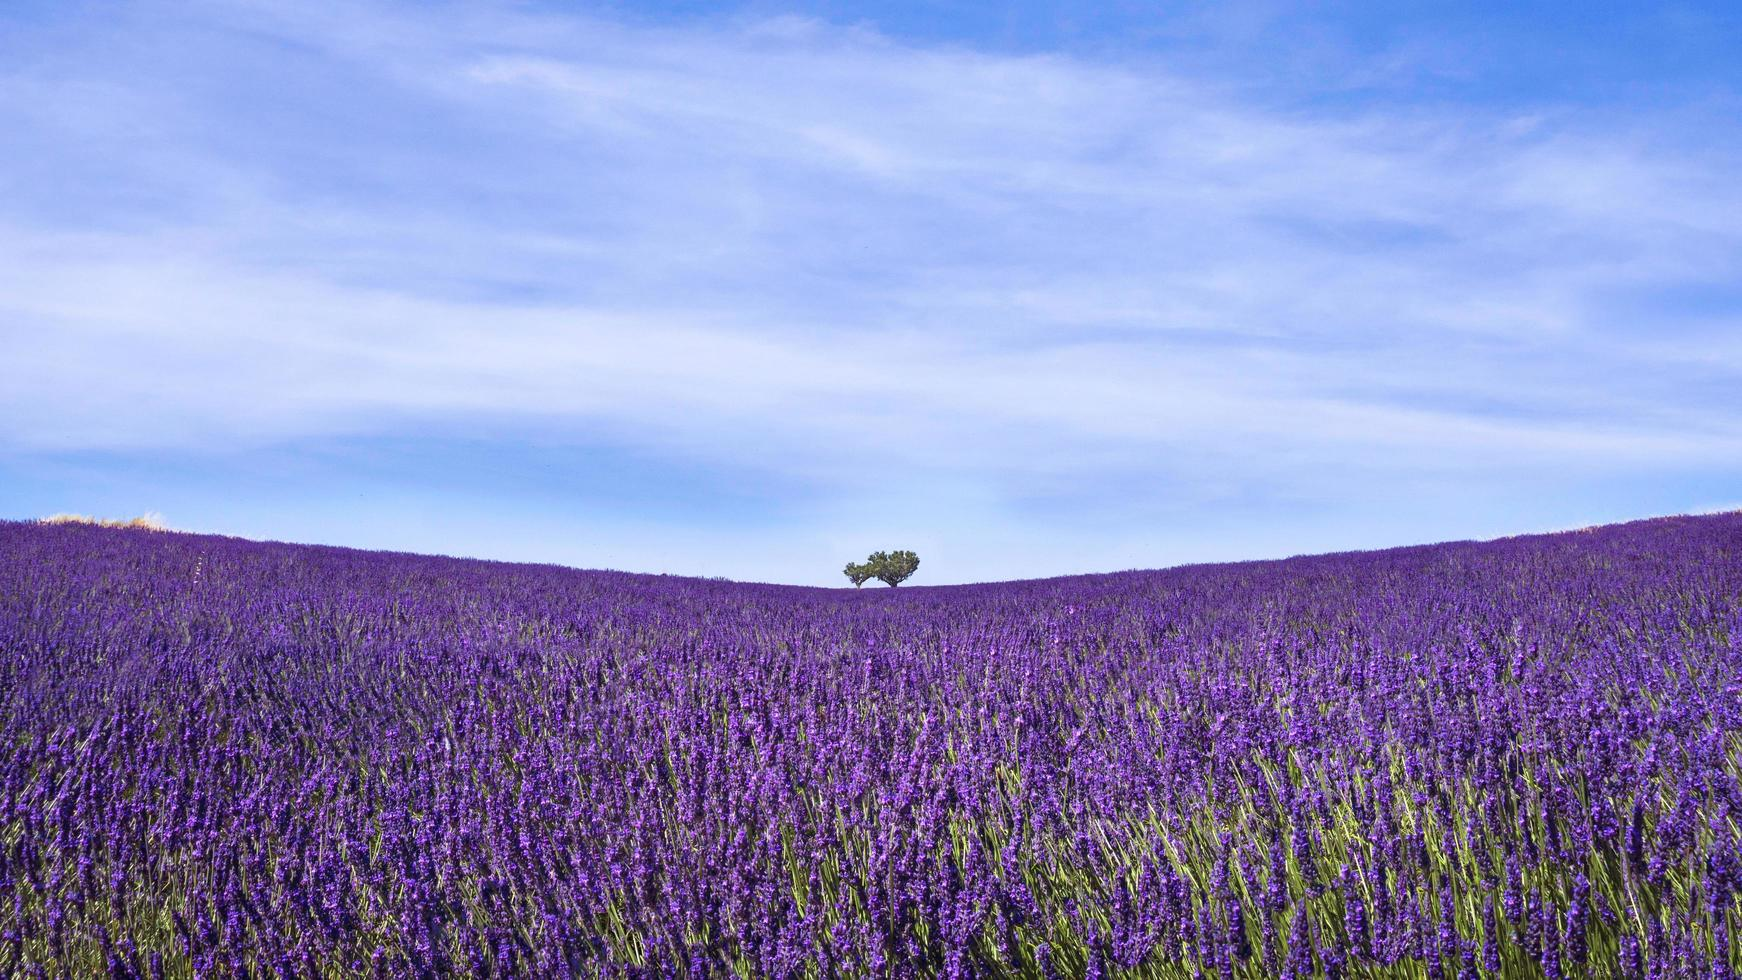 Minimalist landscape view of lavender field in Provence, France  photo